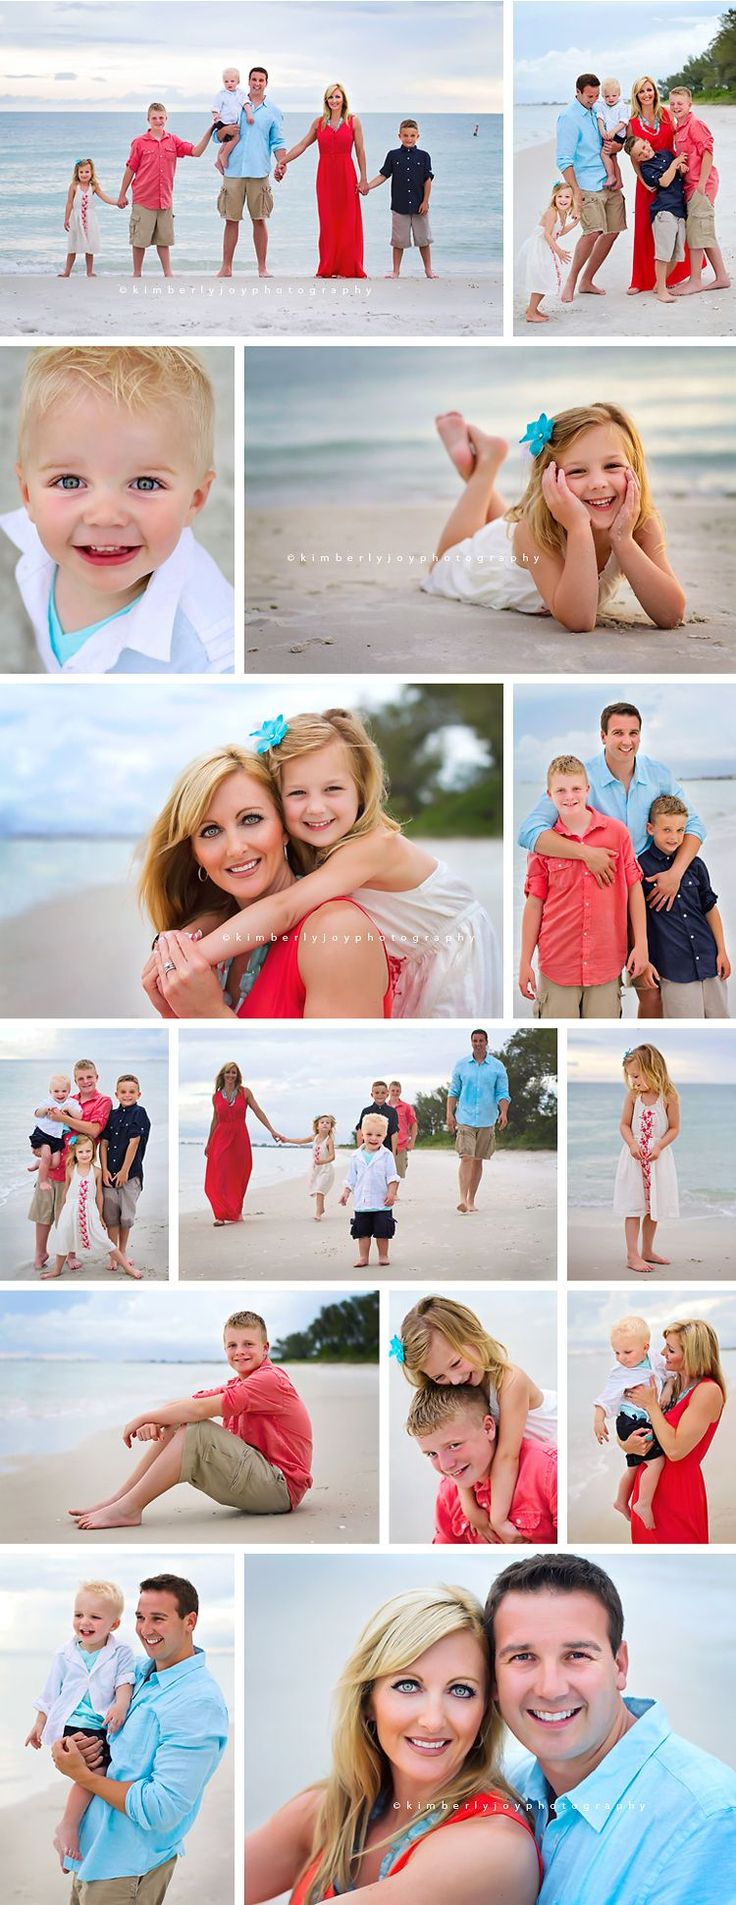 Naples, FL Family Beach Photographer | The N Family. | Naples, FL Newborn Photographer, Family Photographer, Children Photographer, Maternity Photographer | Kimberly Joy Photography